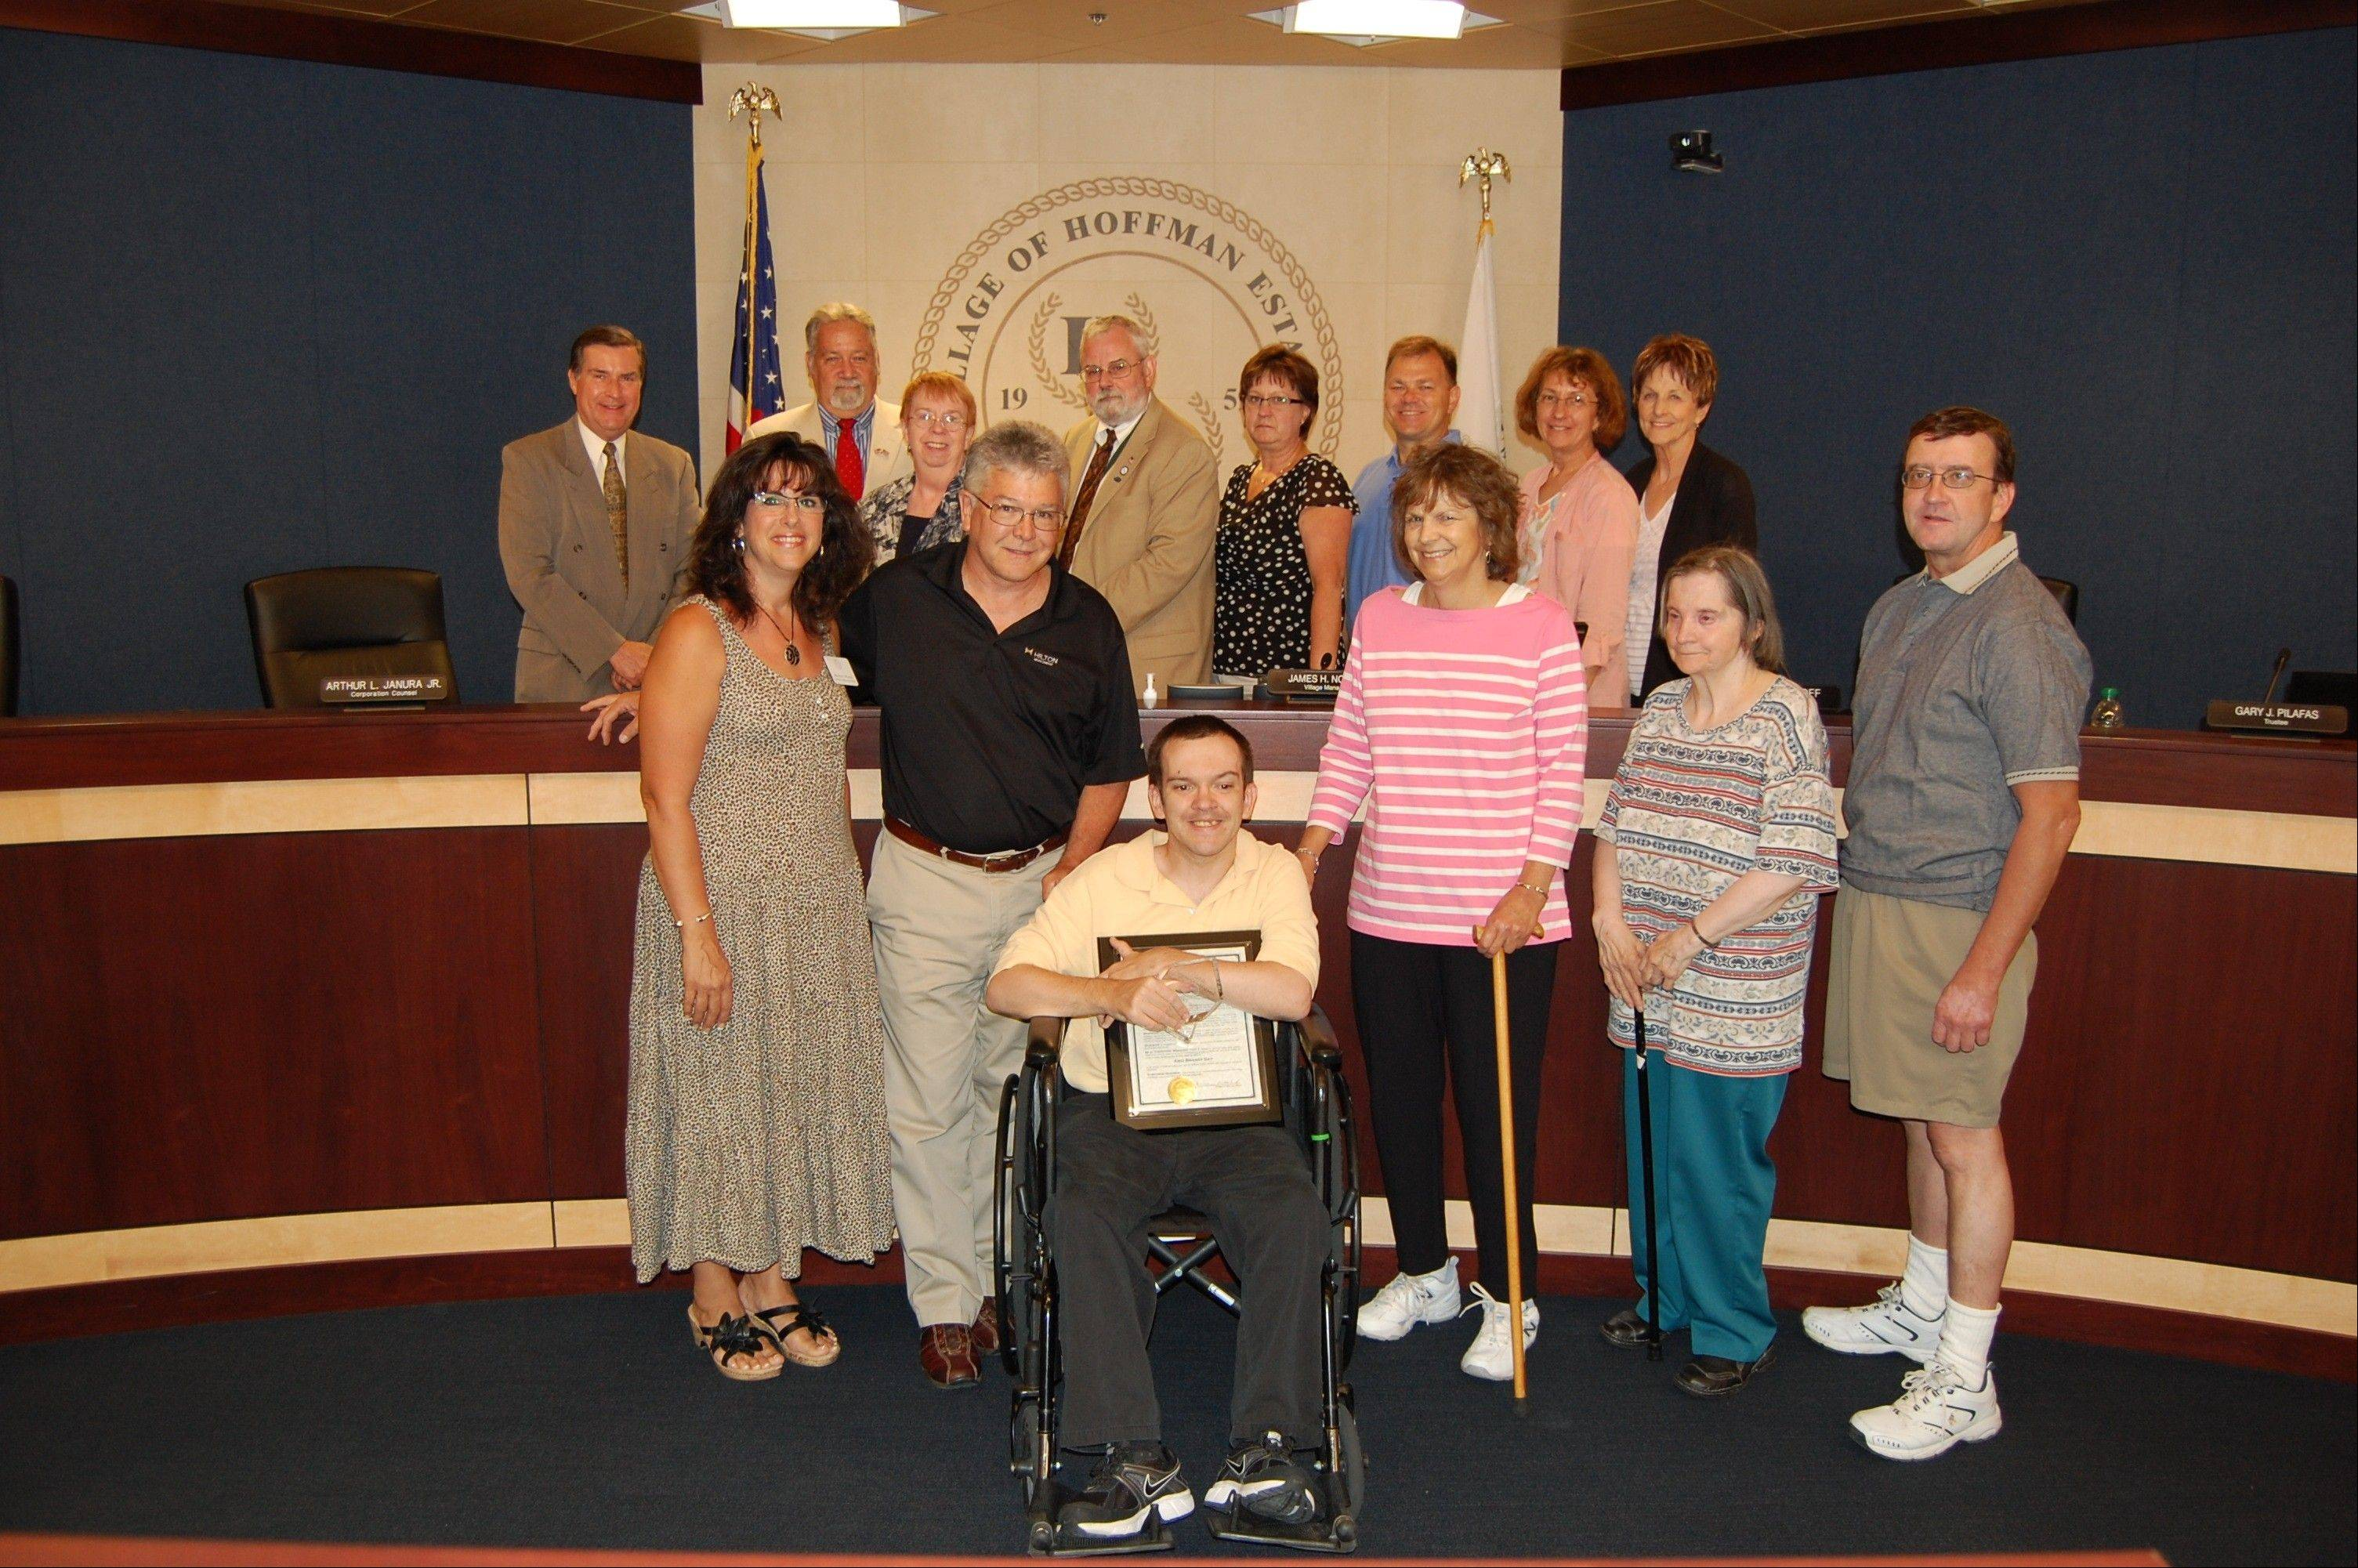 Eric Brandt, this year's recipient of the Barb Basl Award for Disabled Citizens, with the village board, members of the Commission for Disabled Citizens and his parents.